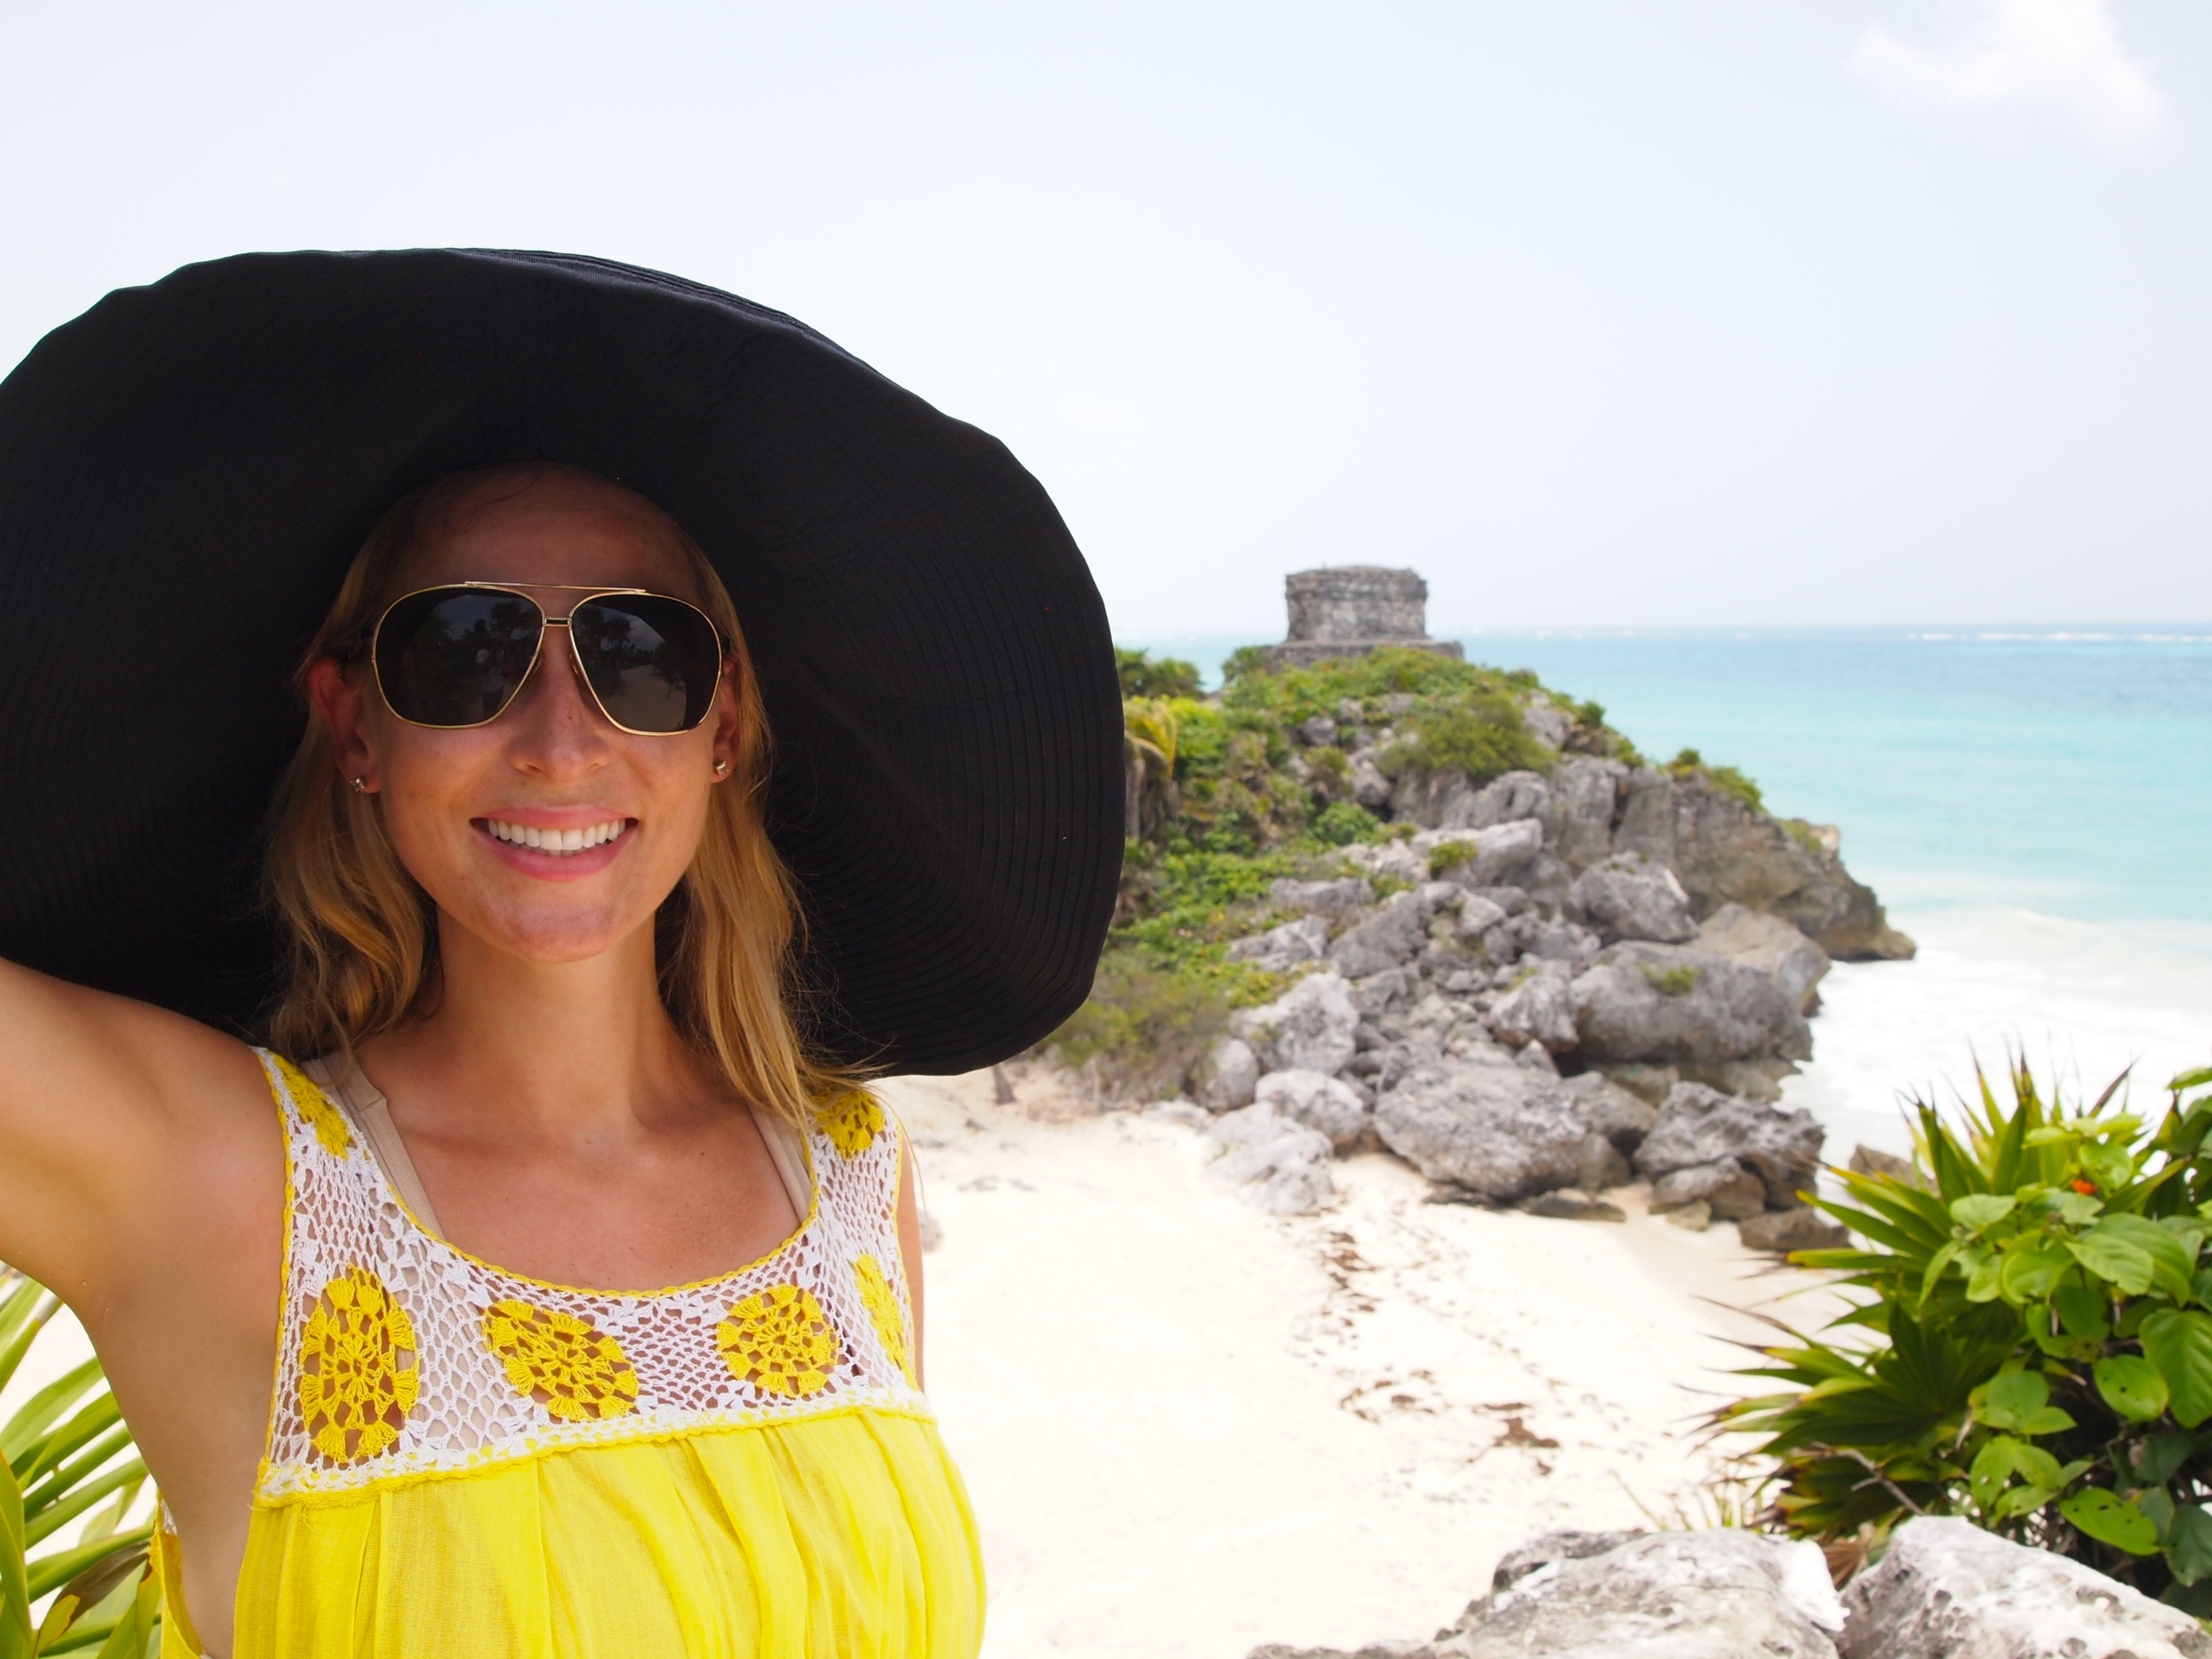 Trip stylin' at the Ruins {complete with a beach for swimming/cooling off}